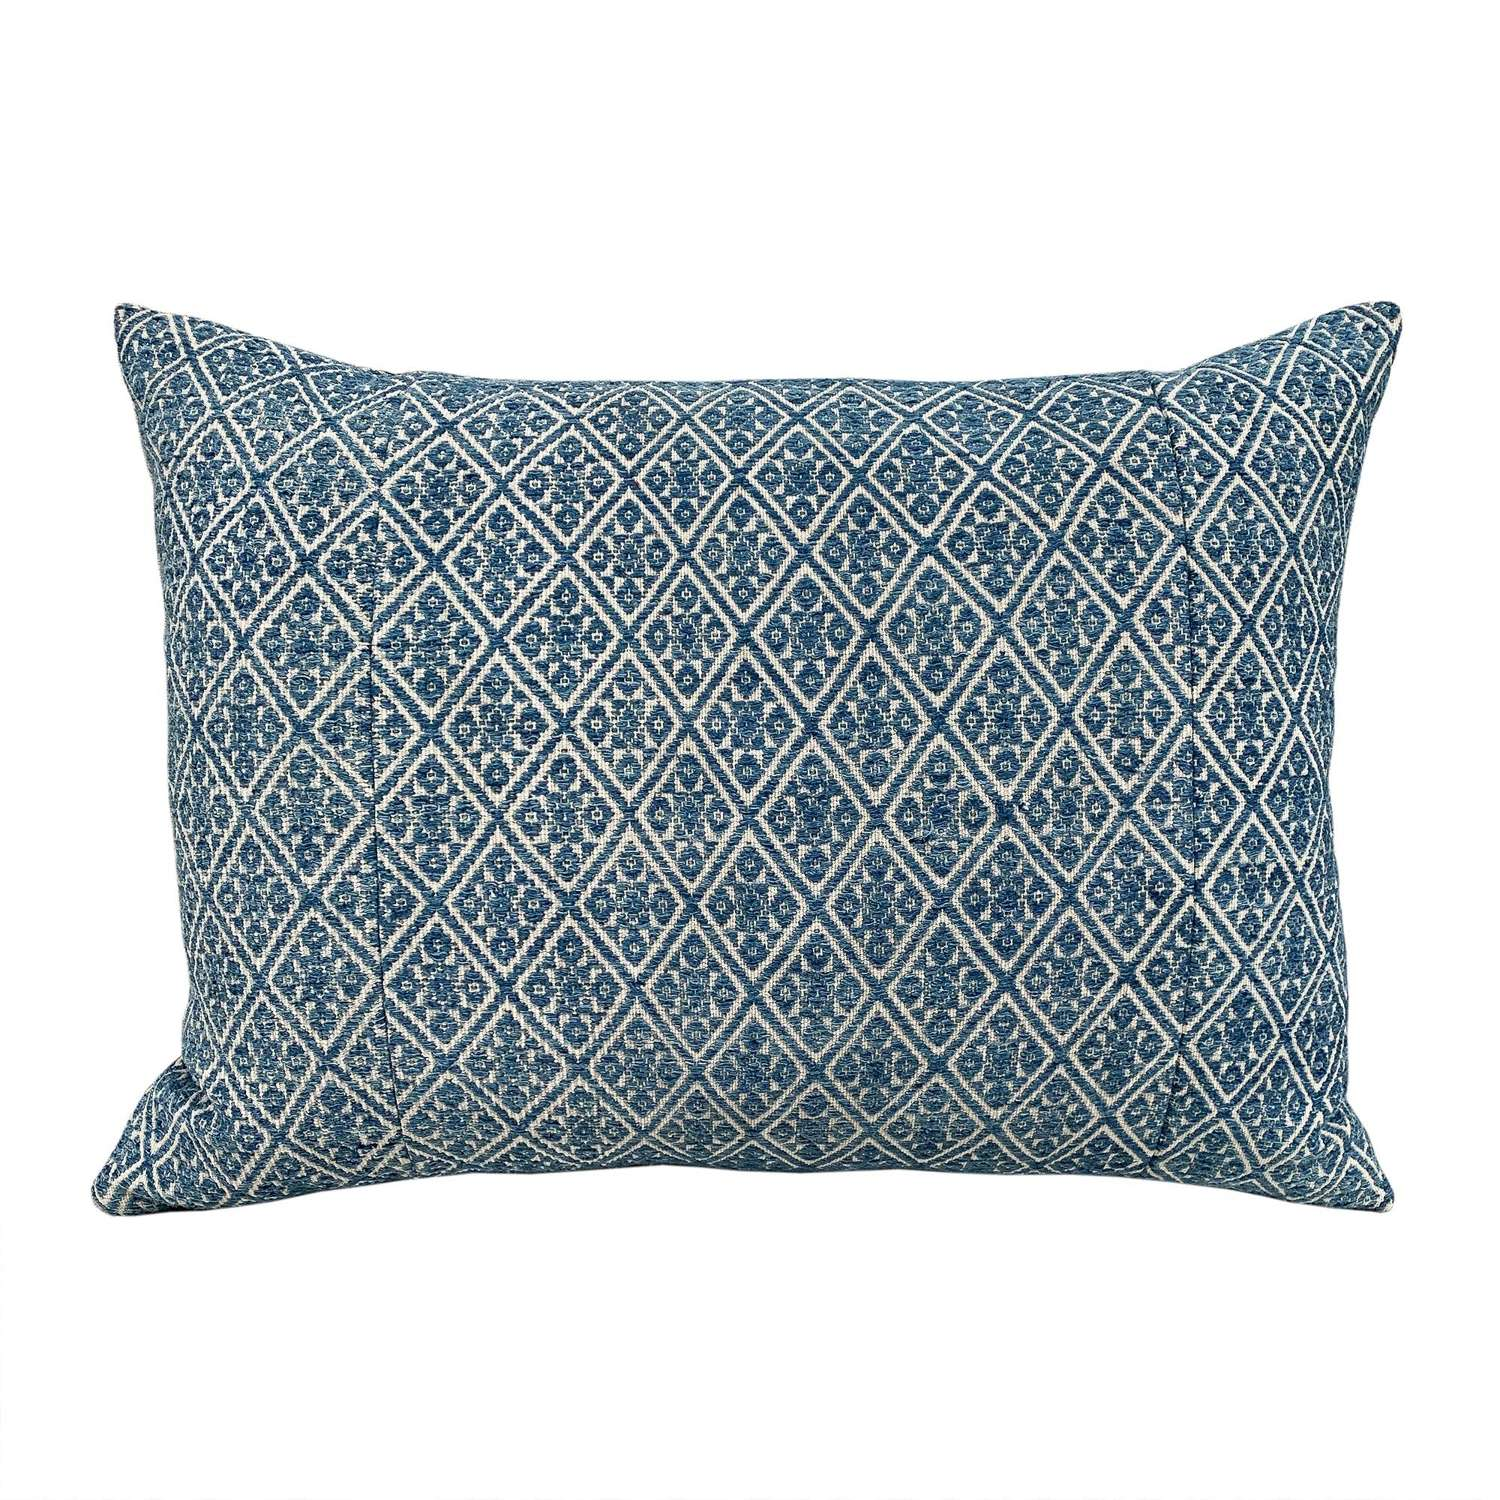 Zhuang pale indigo cushion